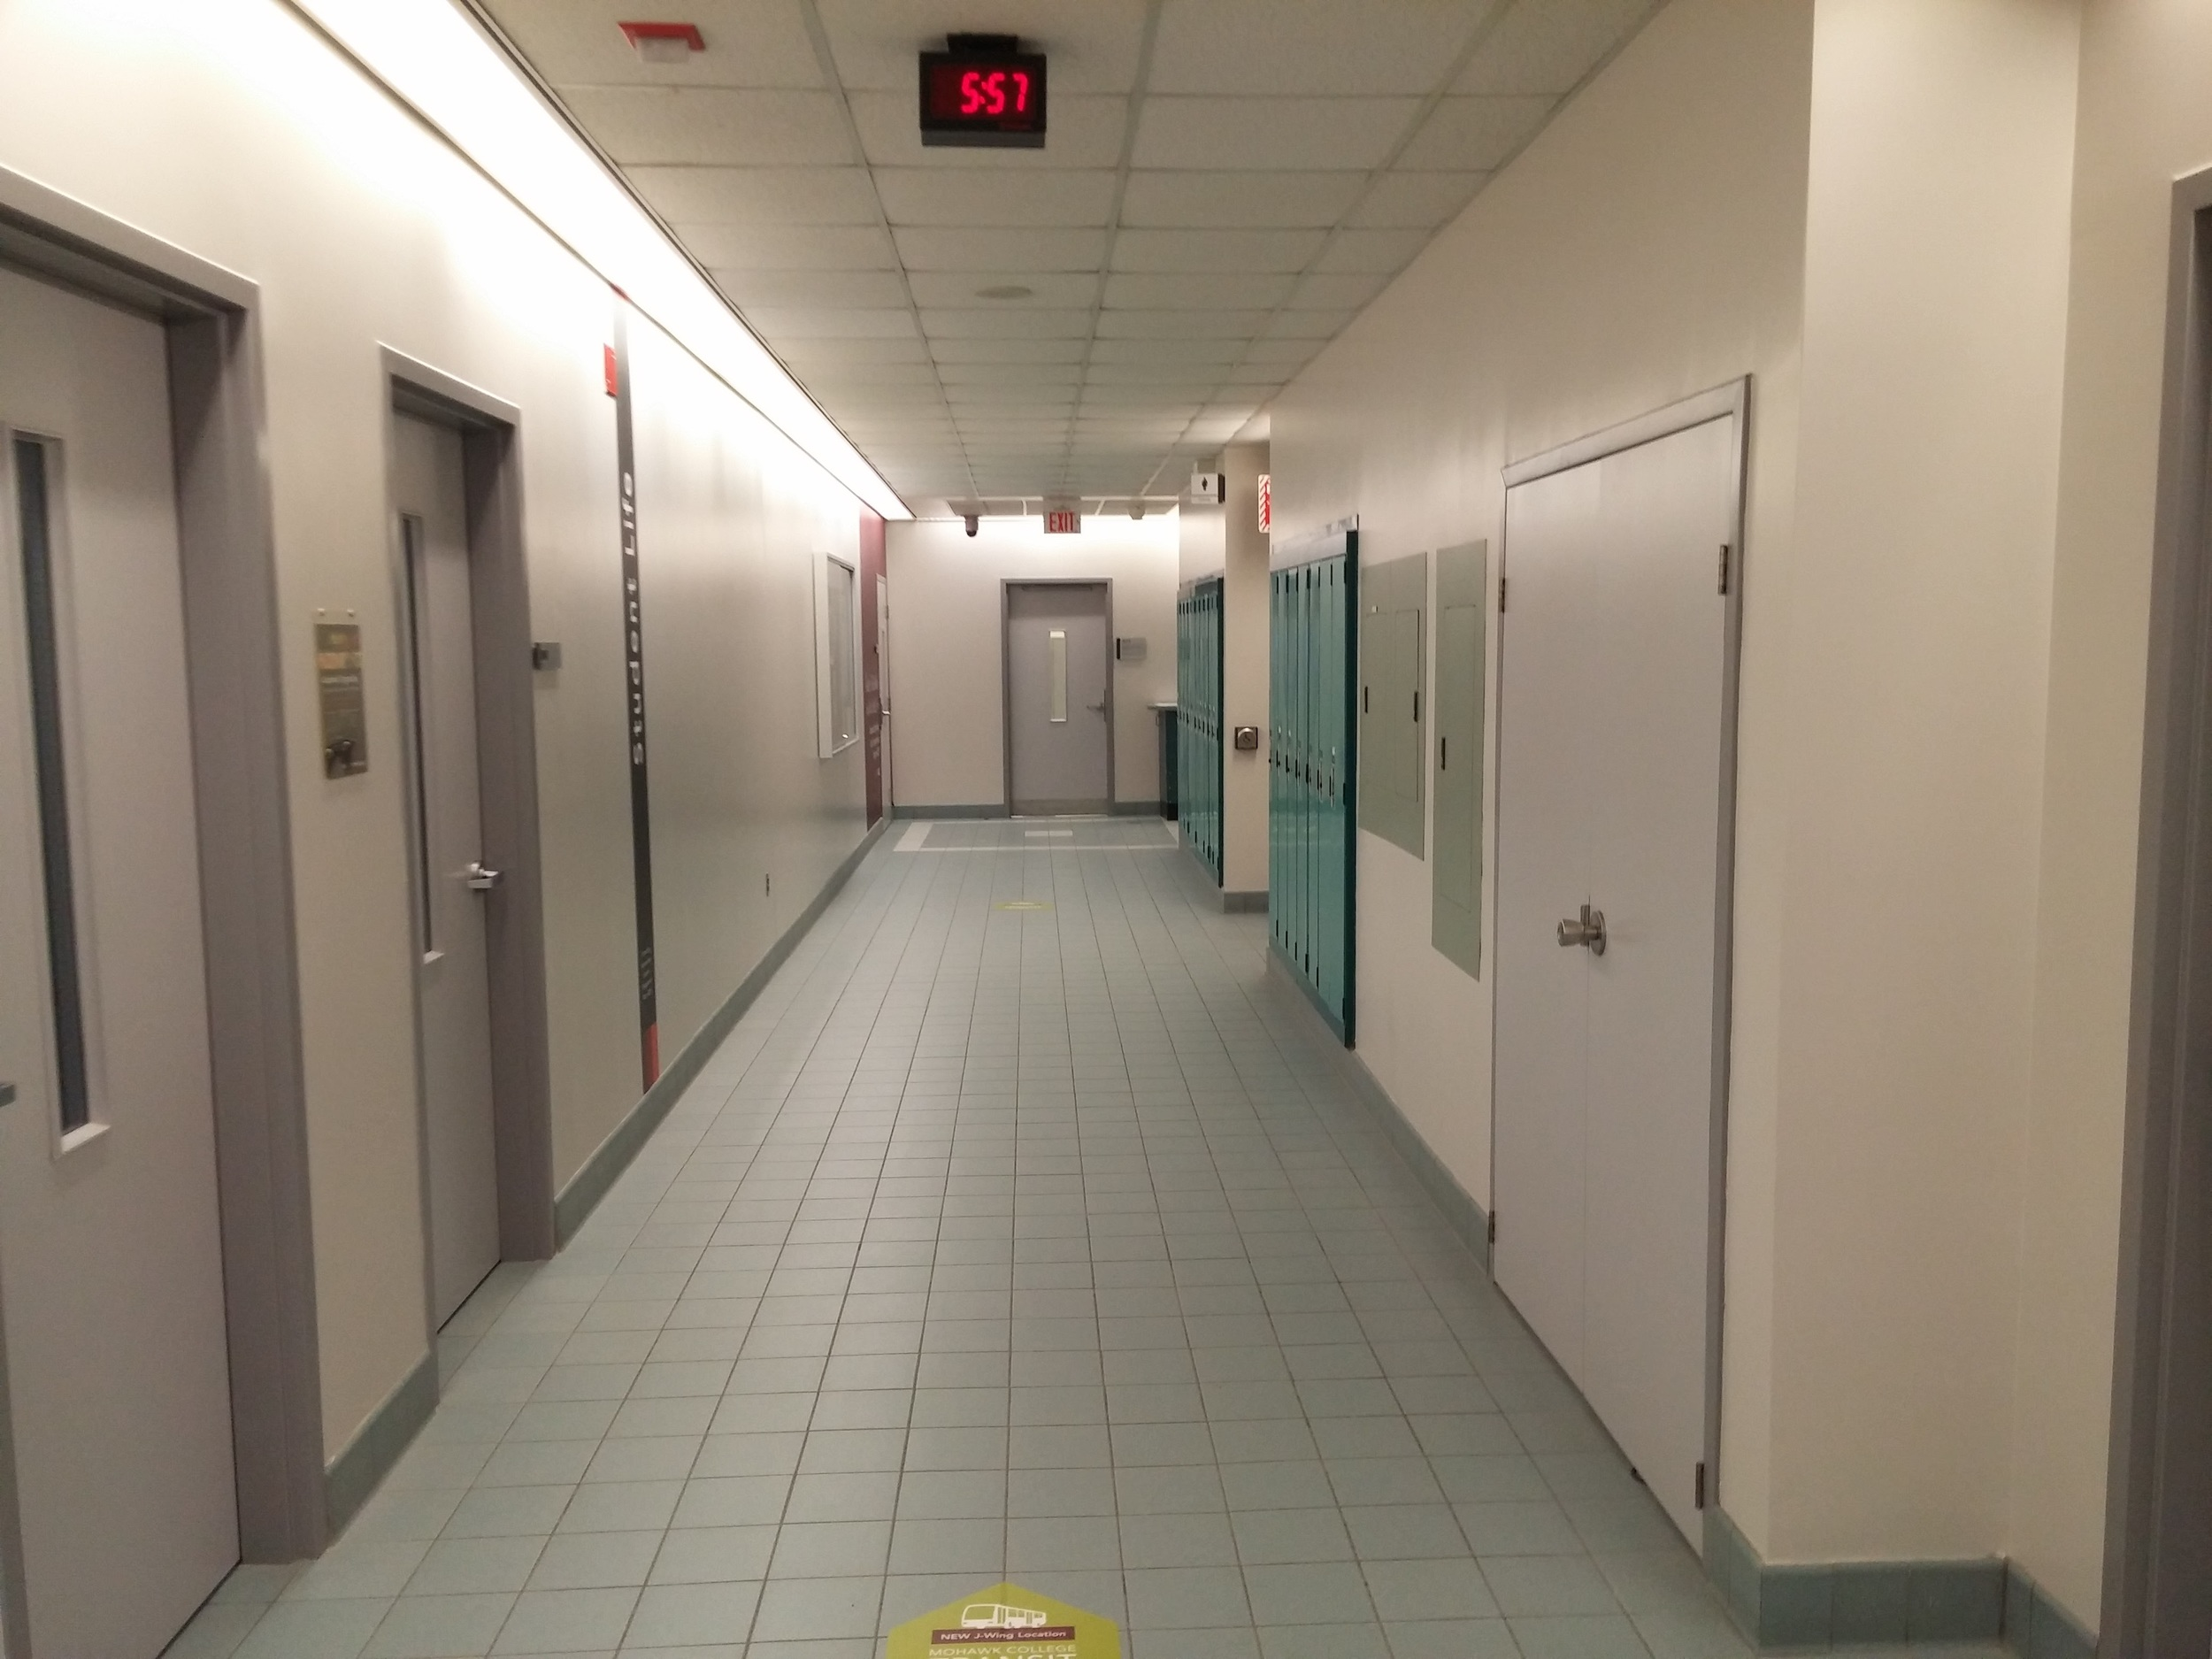 Inside the J-Wing. Note the narrow hallways, but also note the wayfinding.